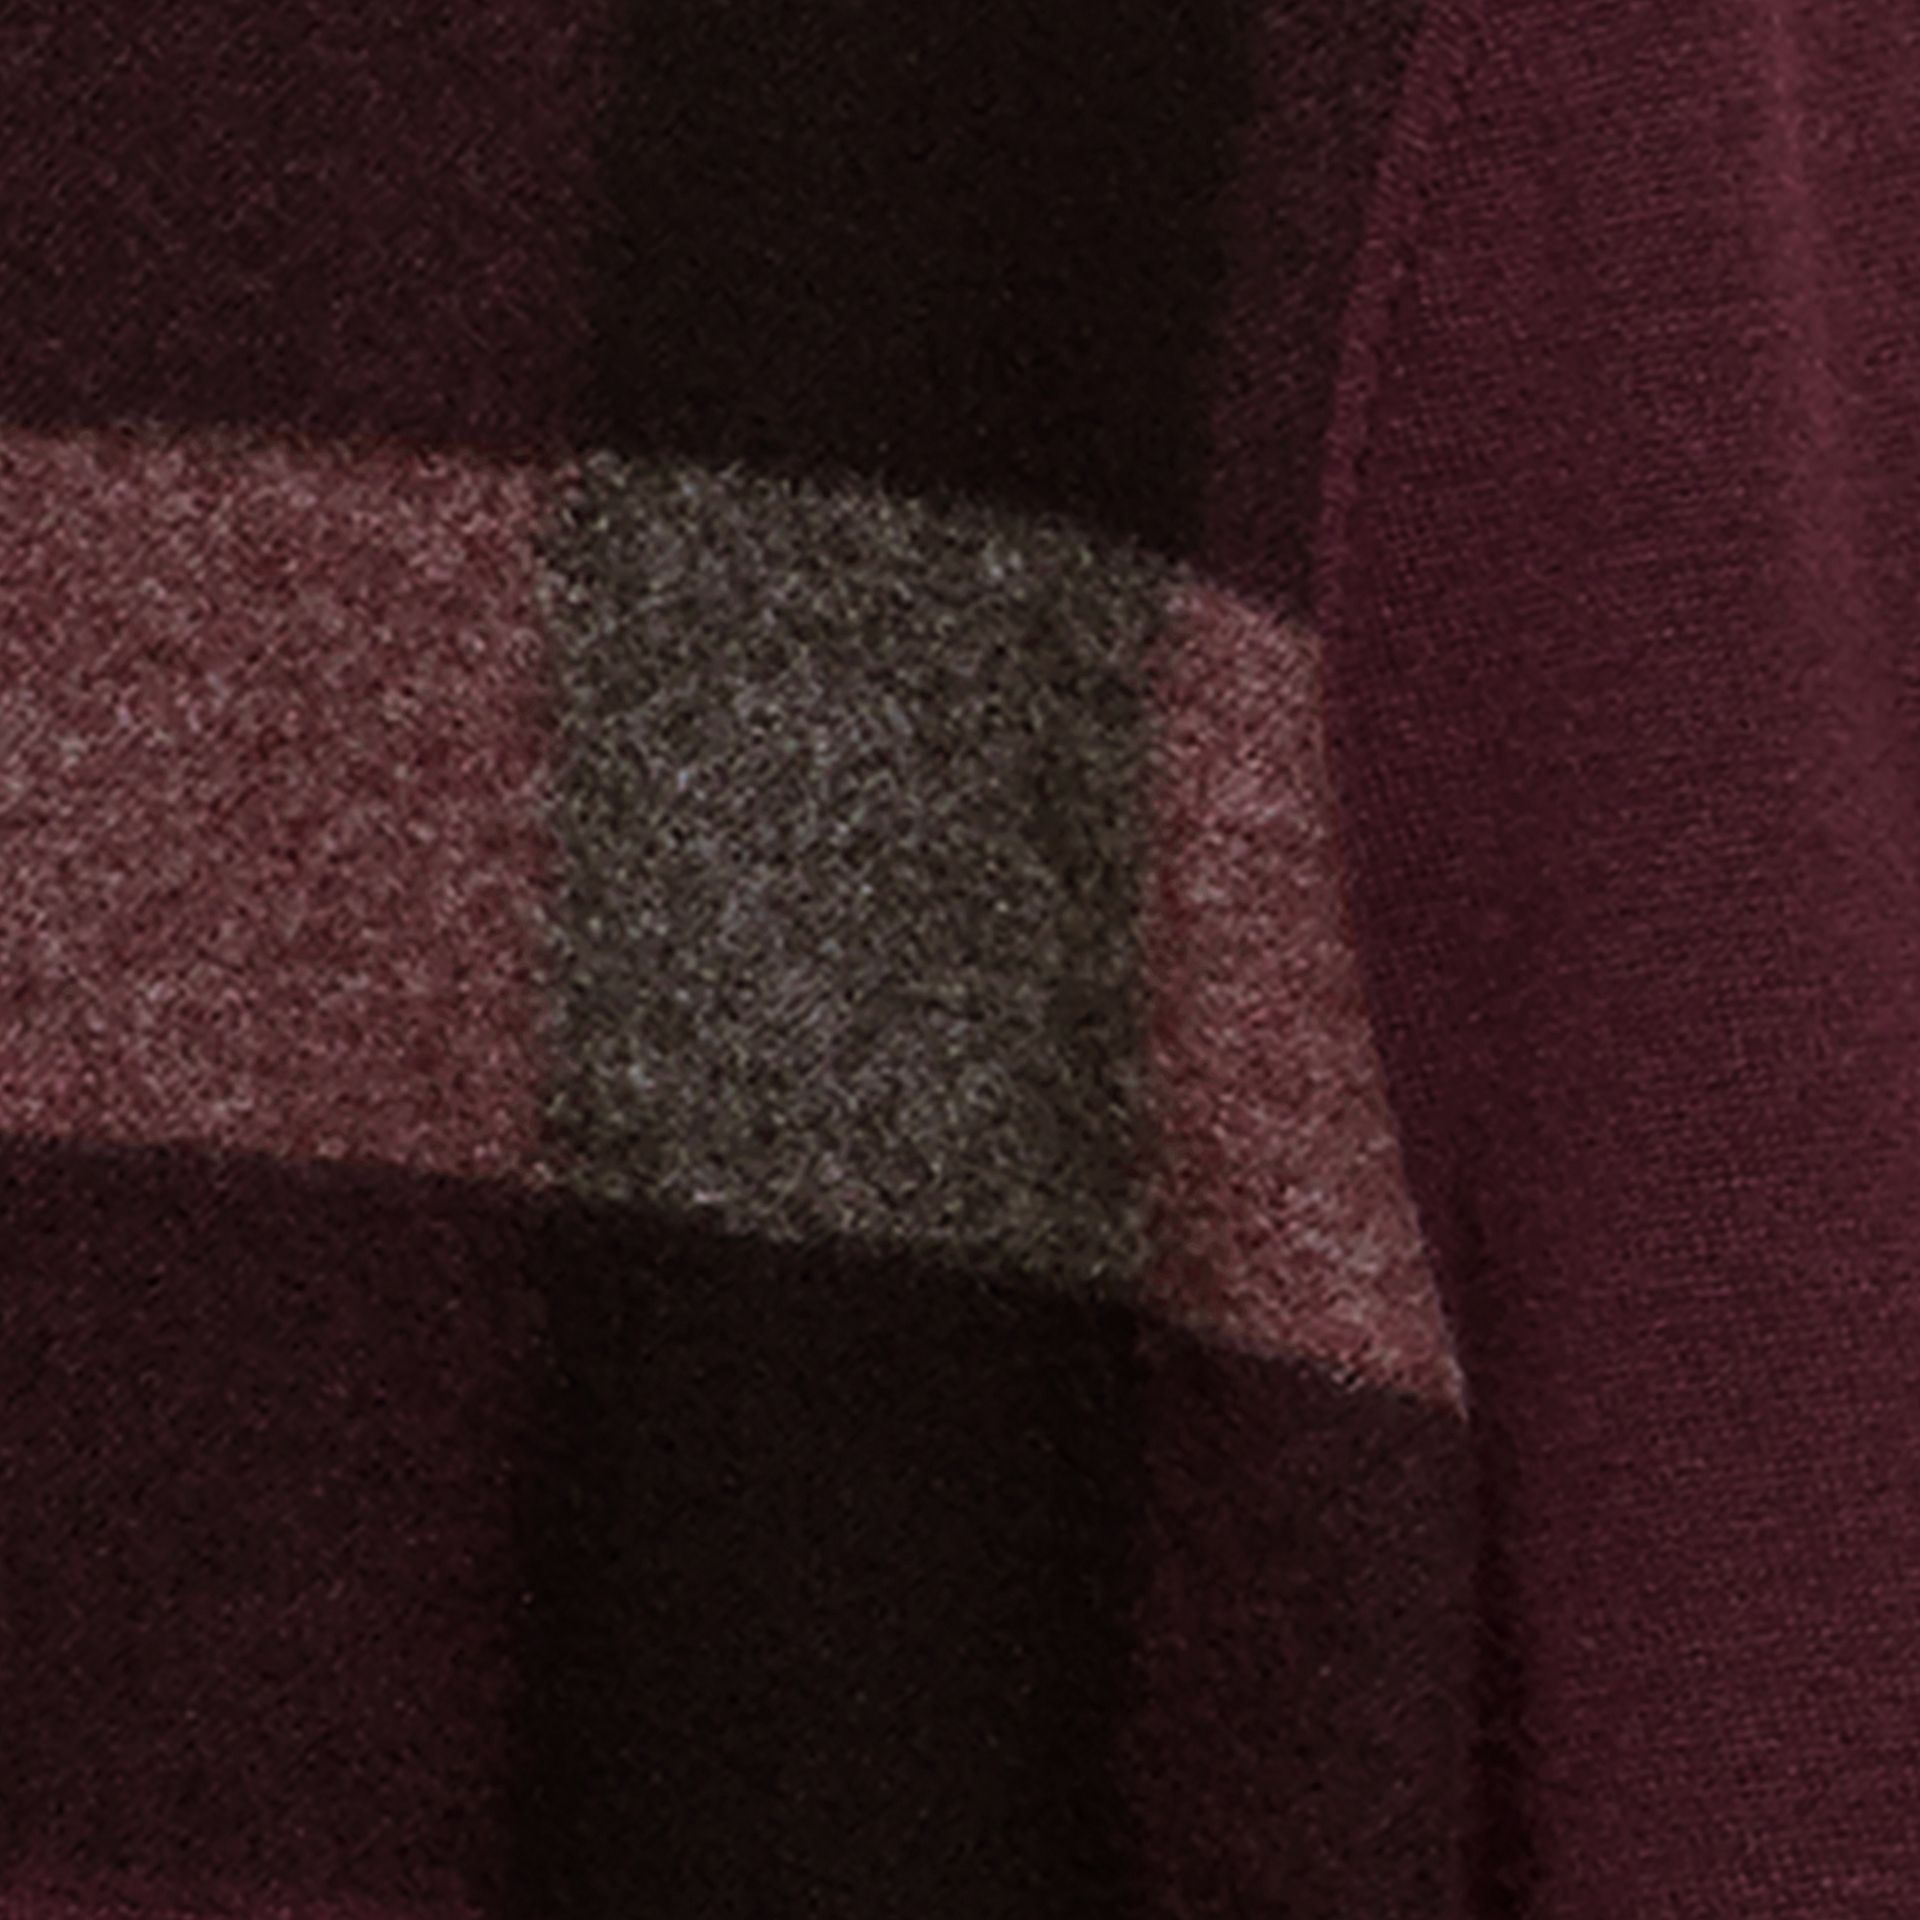 Graphic Check Cashmere Cotton Sweater Burgundy Red - gallery image 2